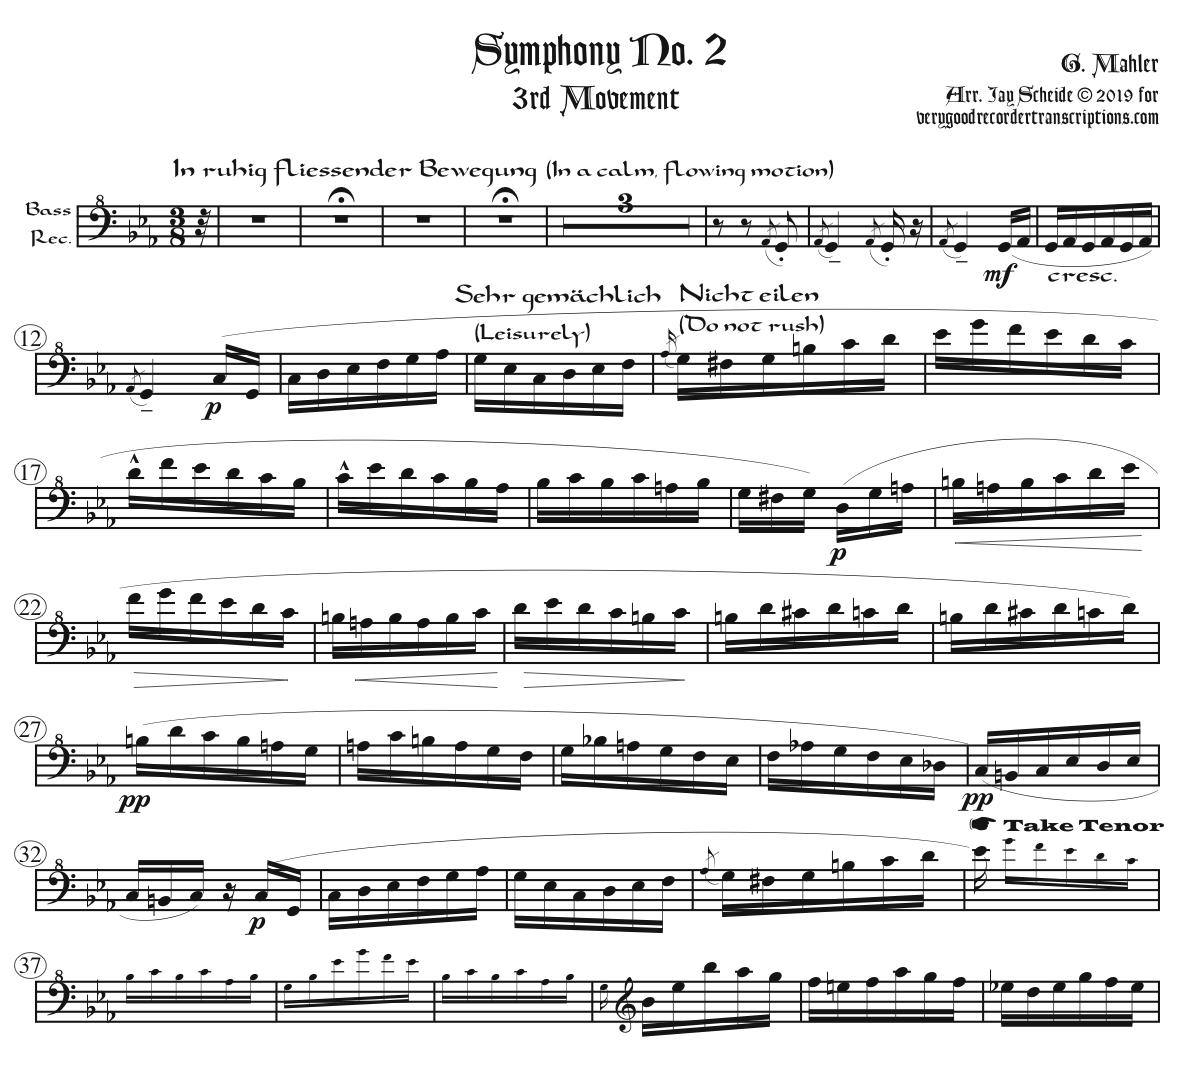 First three Mvts. from Symphony No. 2, arr. for one player alternating between SATB and Alto recorder in G